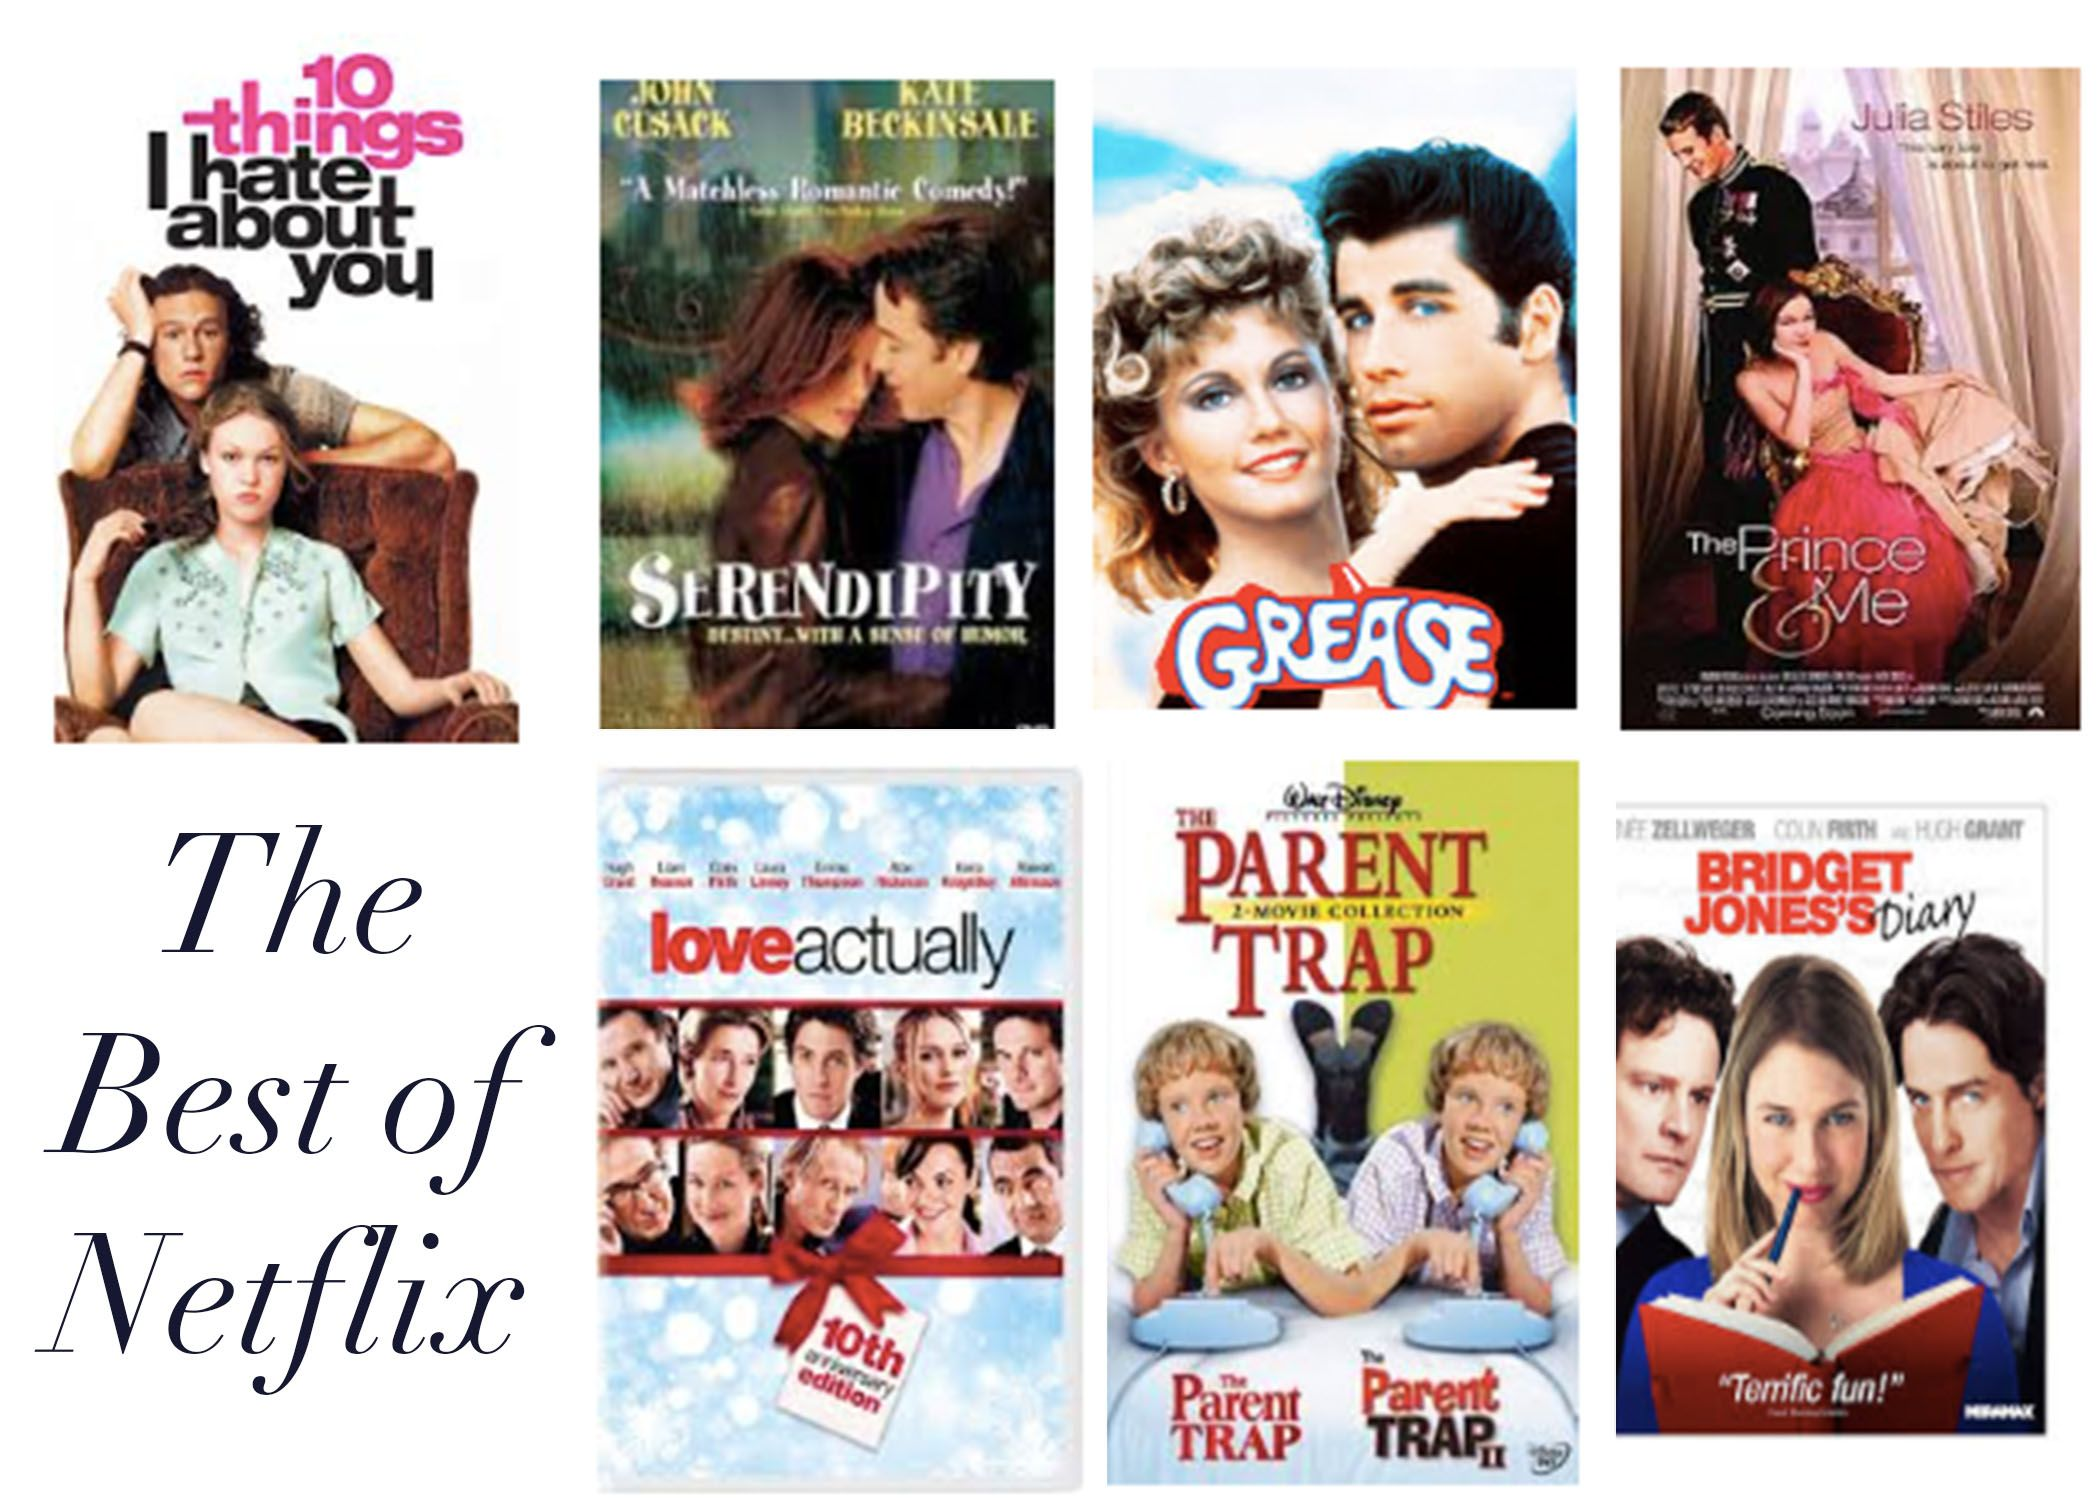 The Best FeelGood Movies on Netflix Good movies on